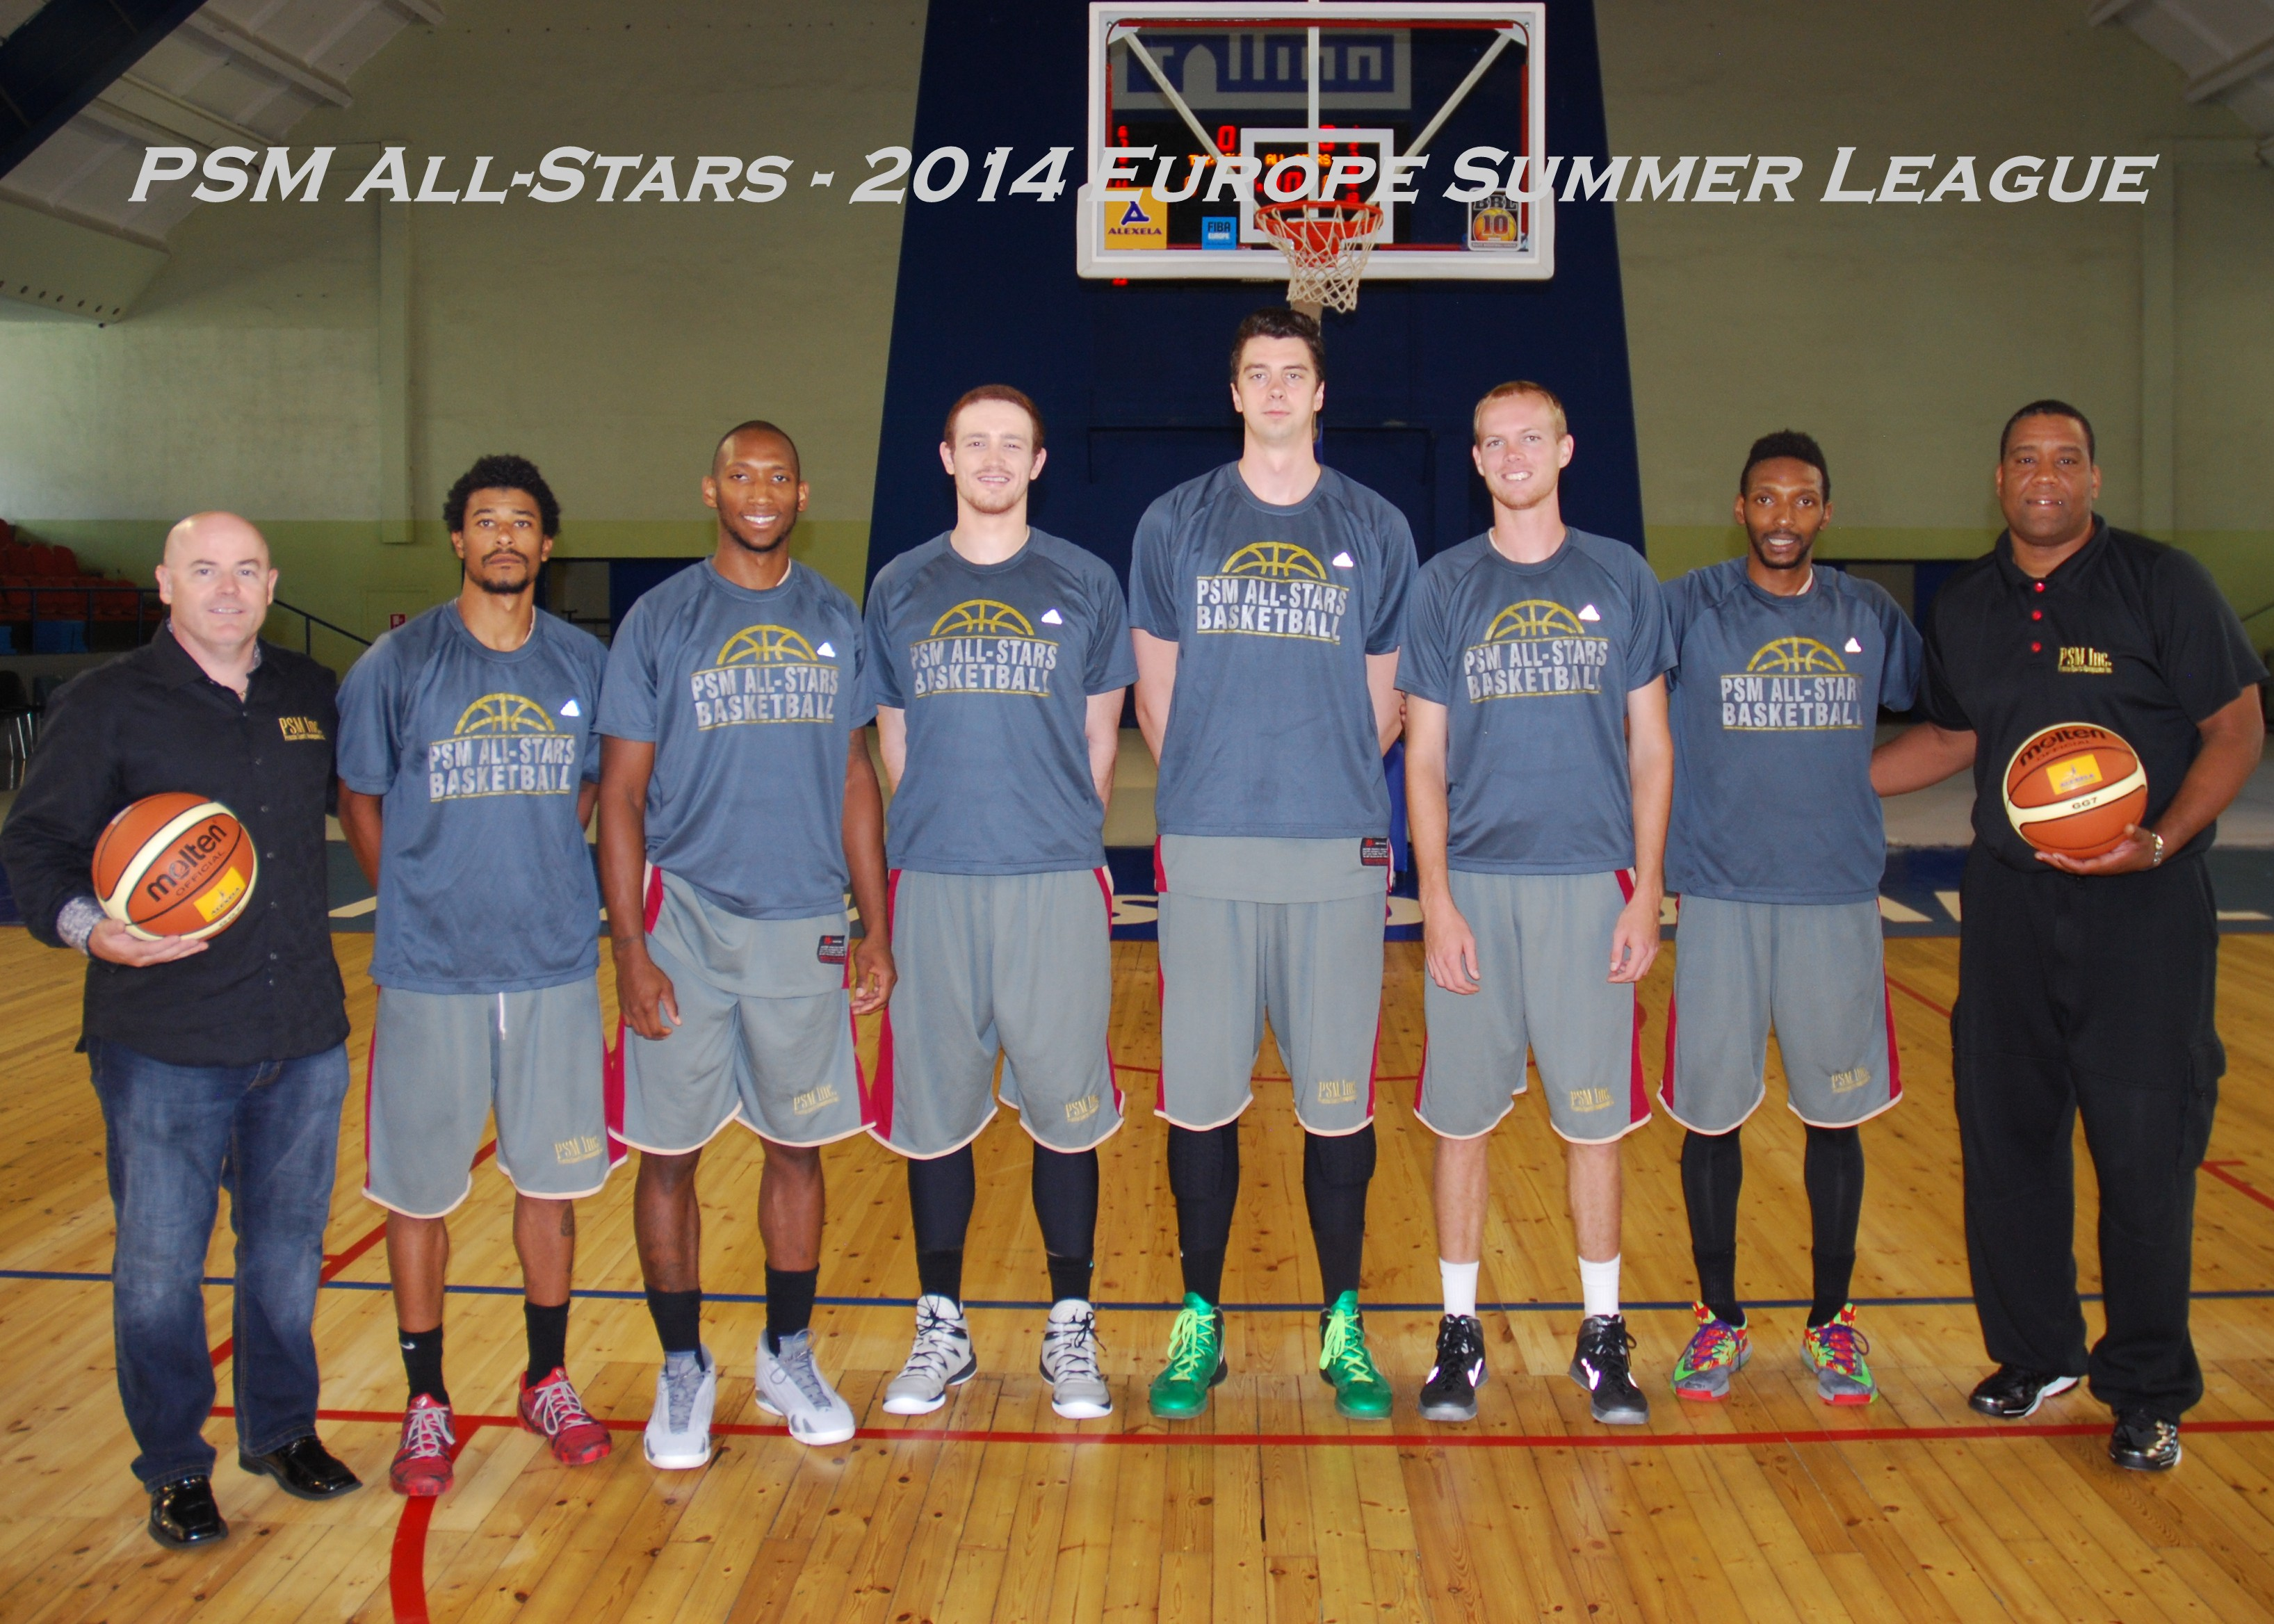 2014 Europe Summer League PSM All-Stars